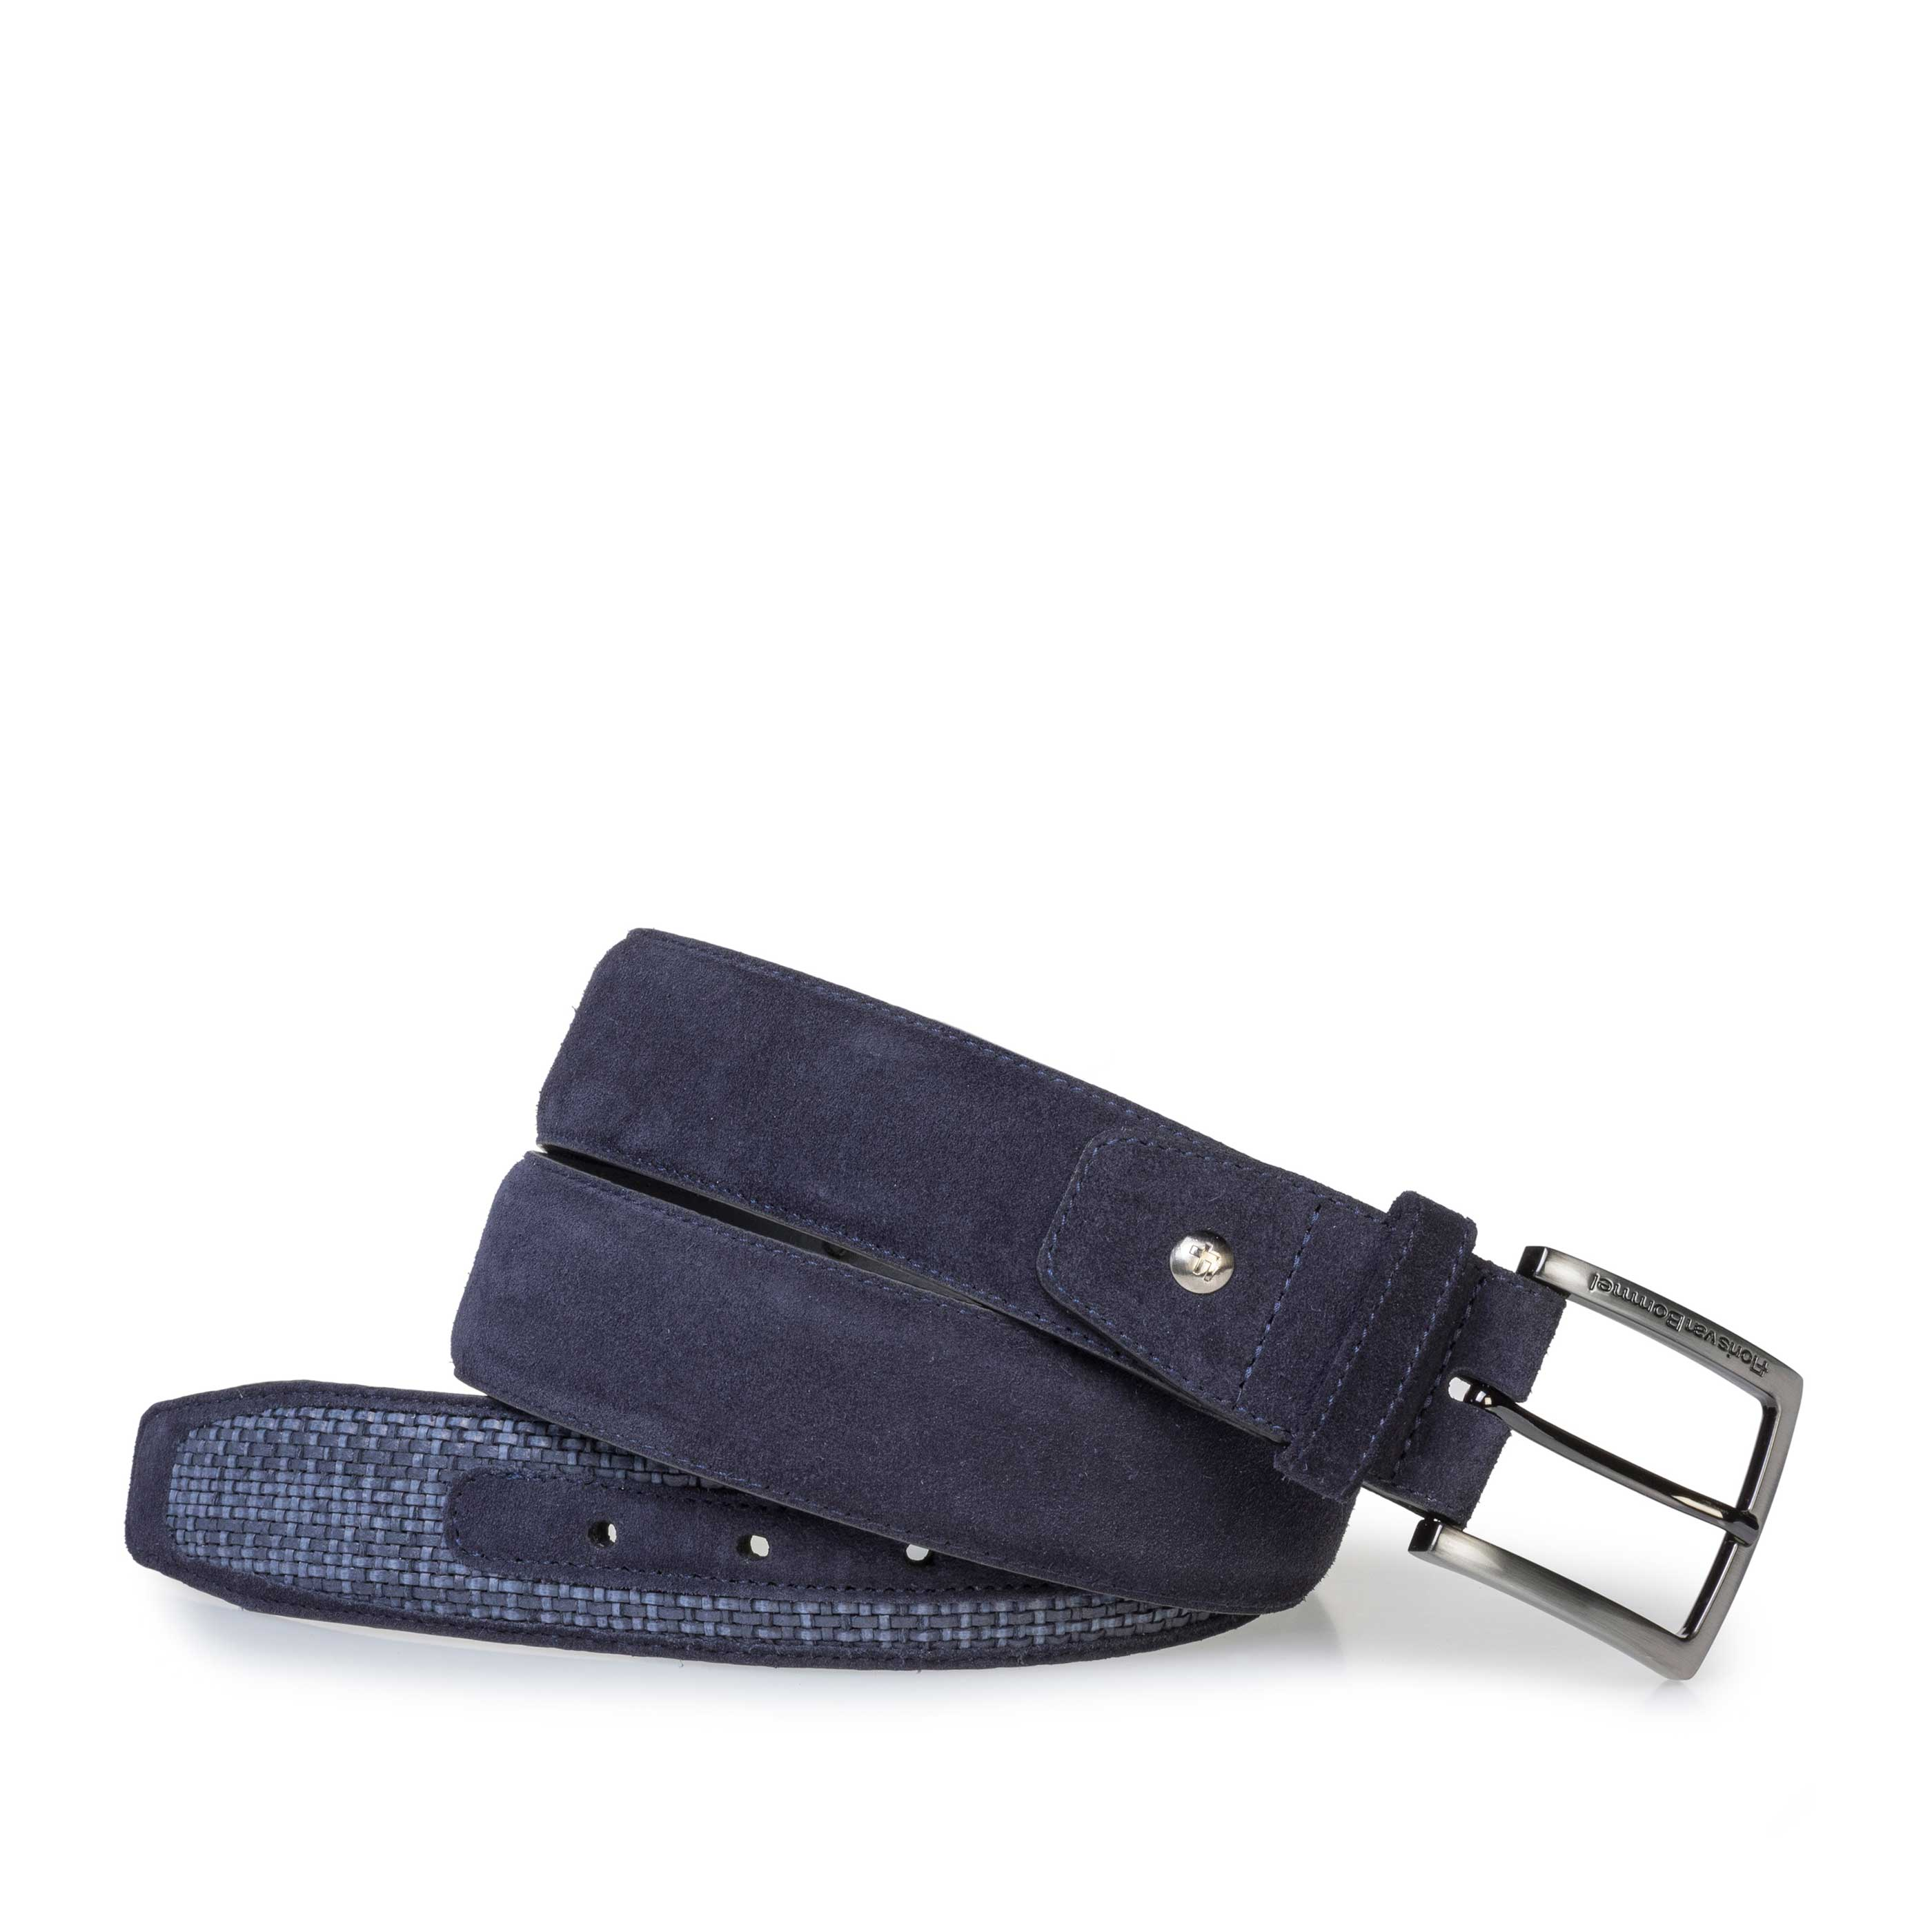 75159/28 - Dark blue braided suede leather belt